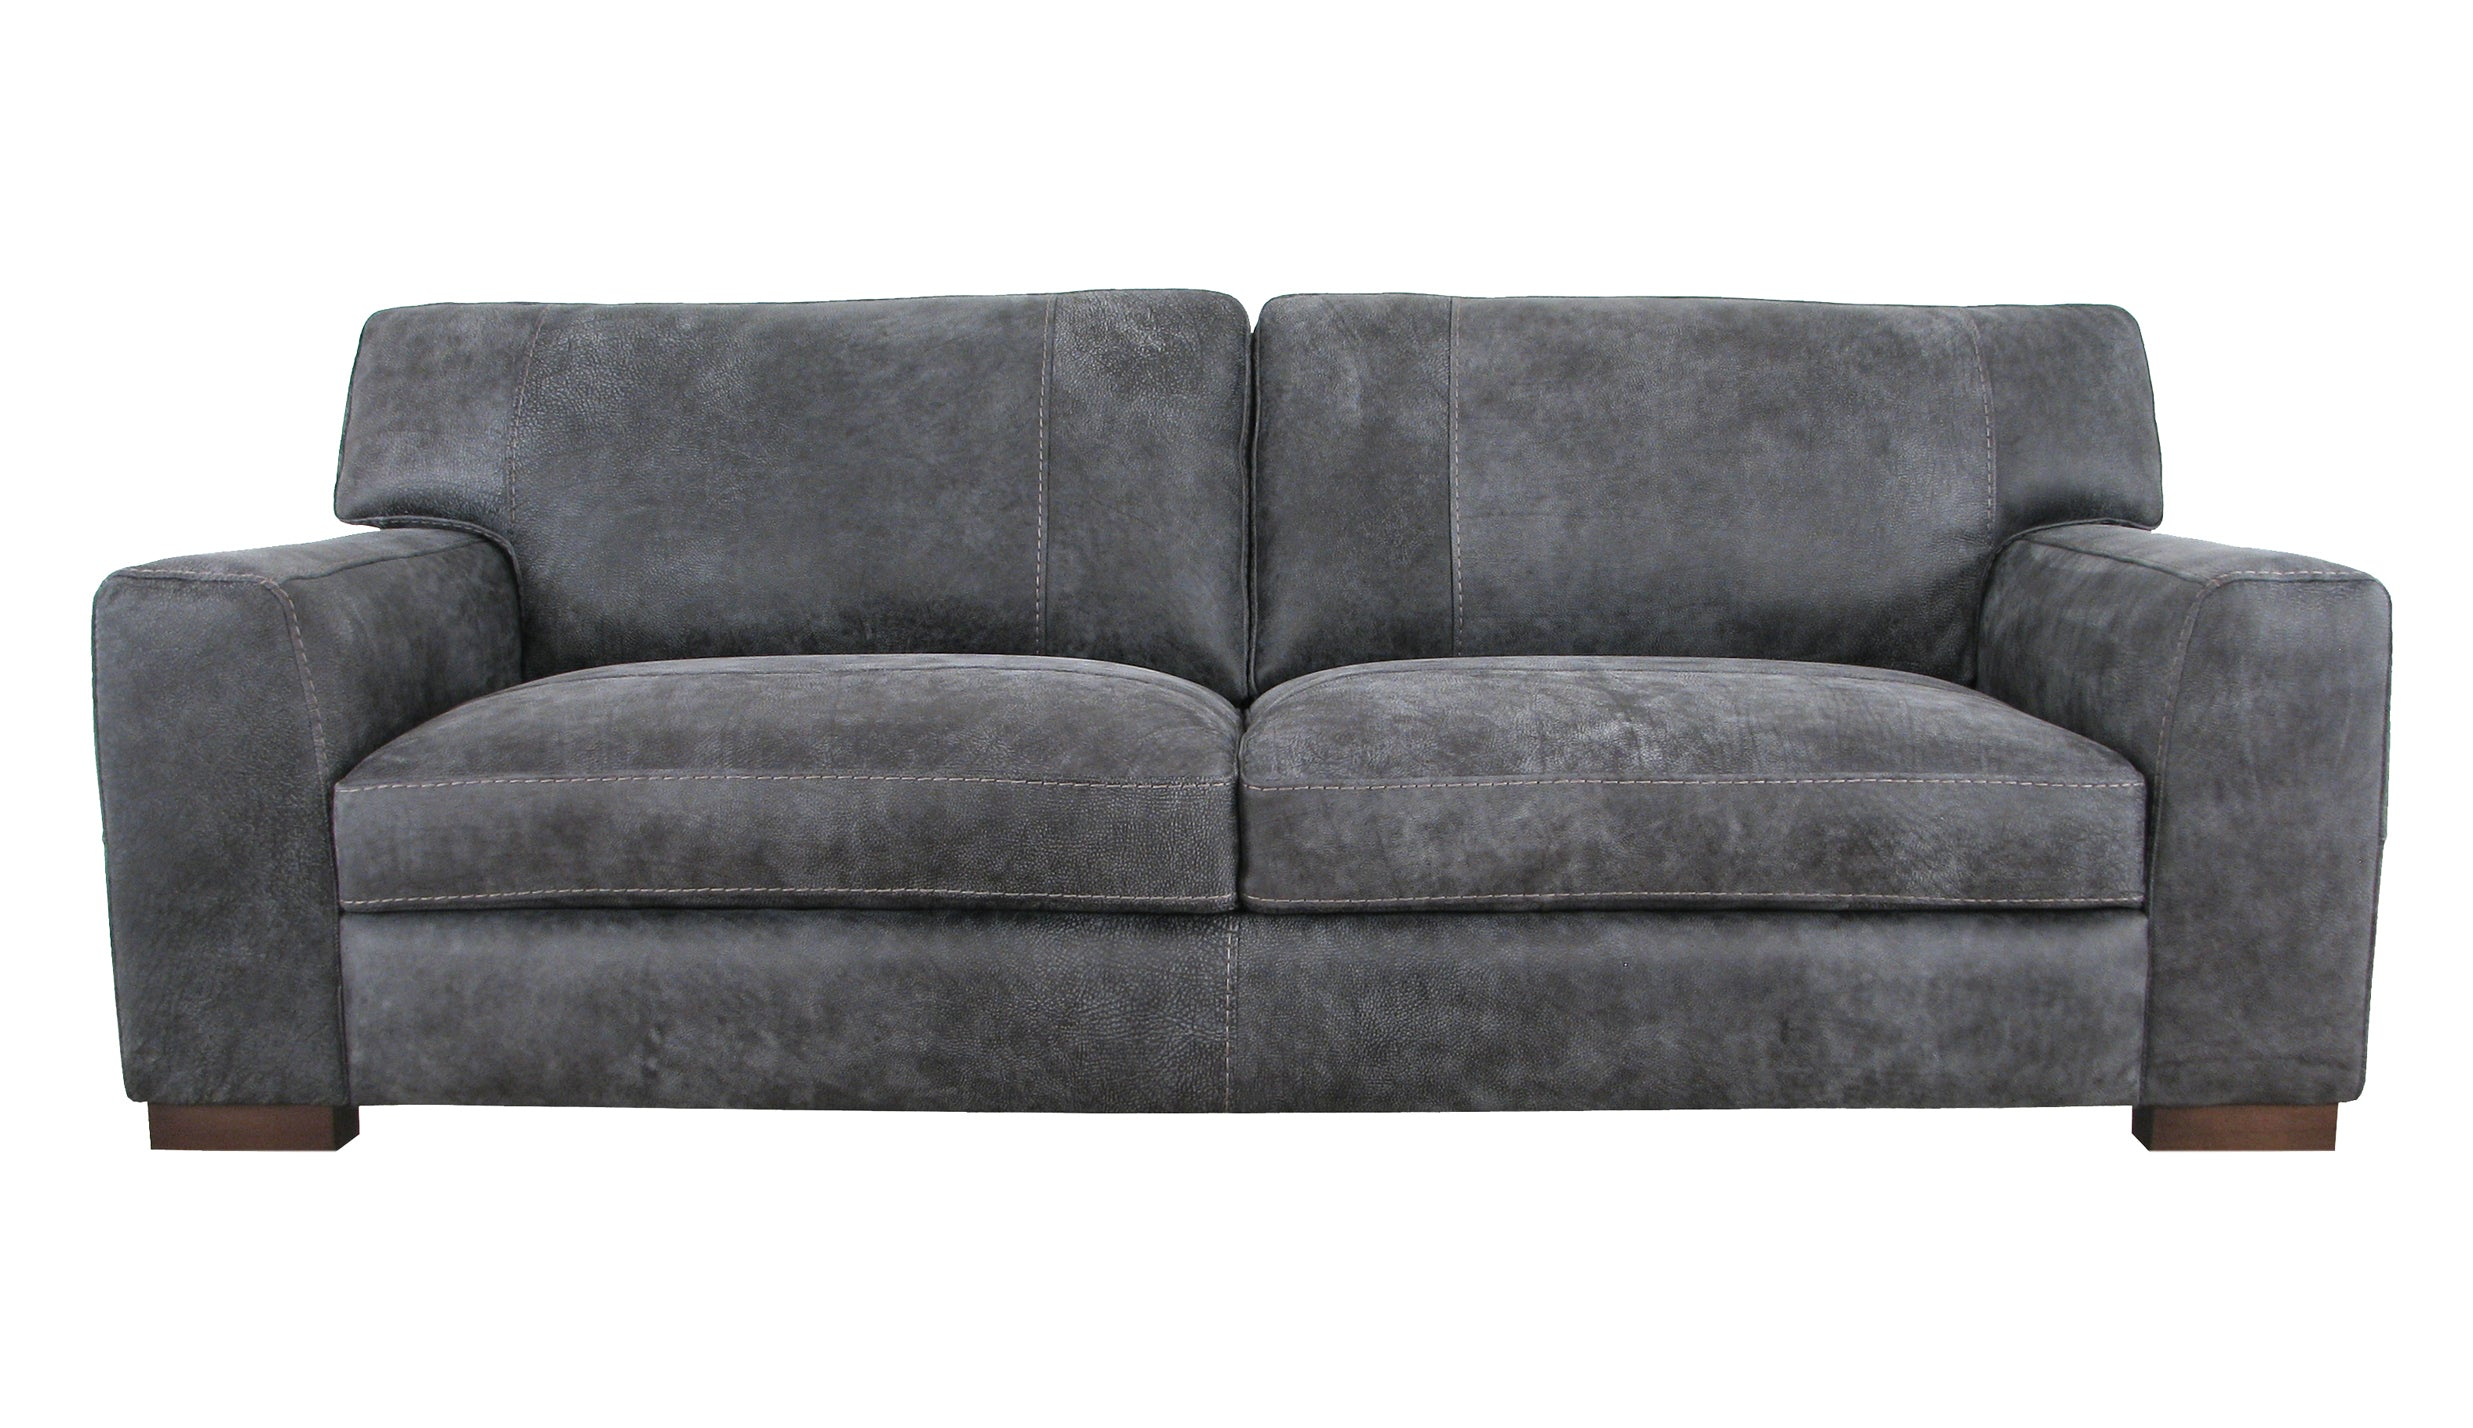 Zone Extra Large Sofa in Leather